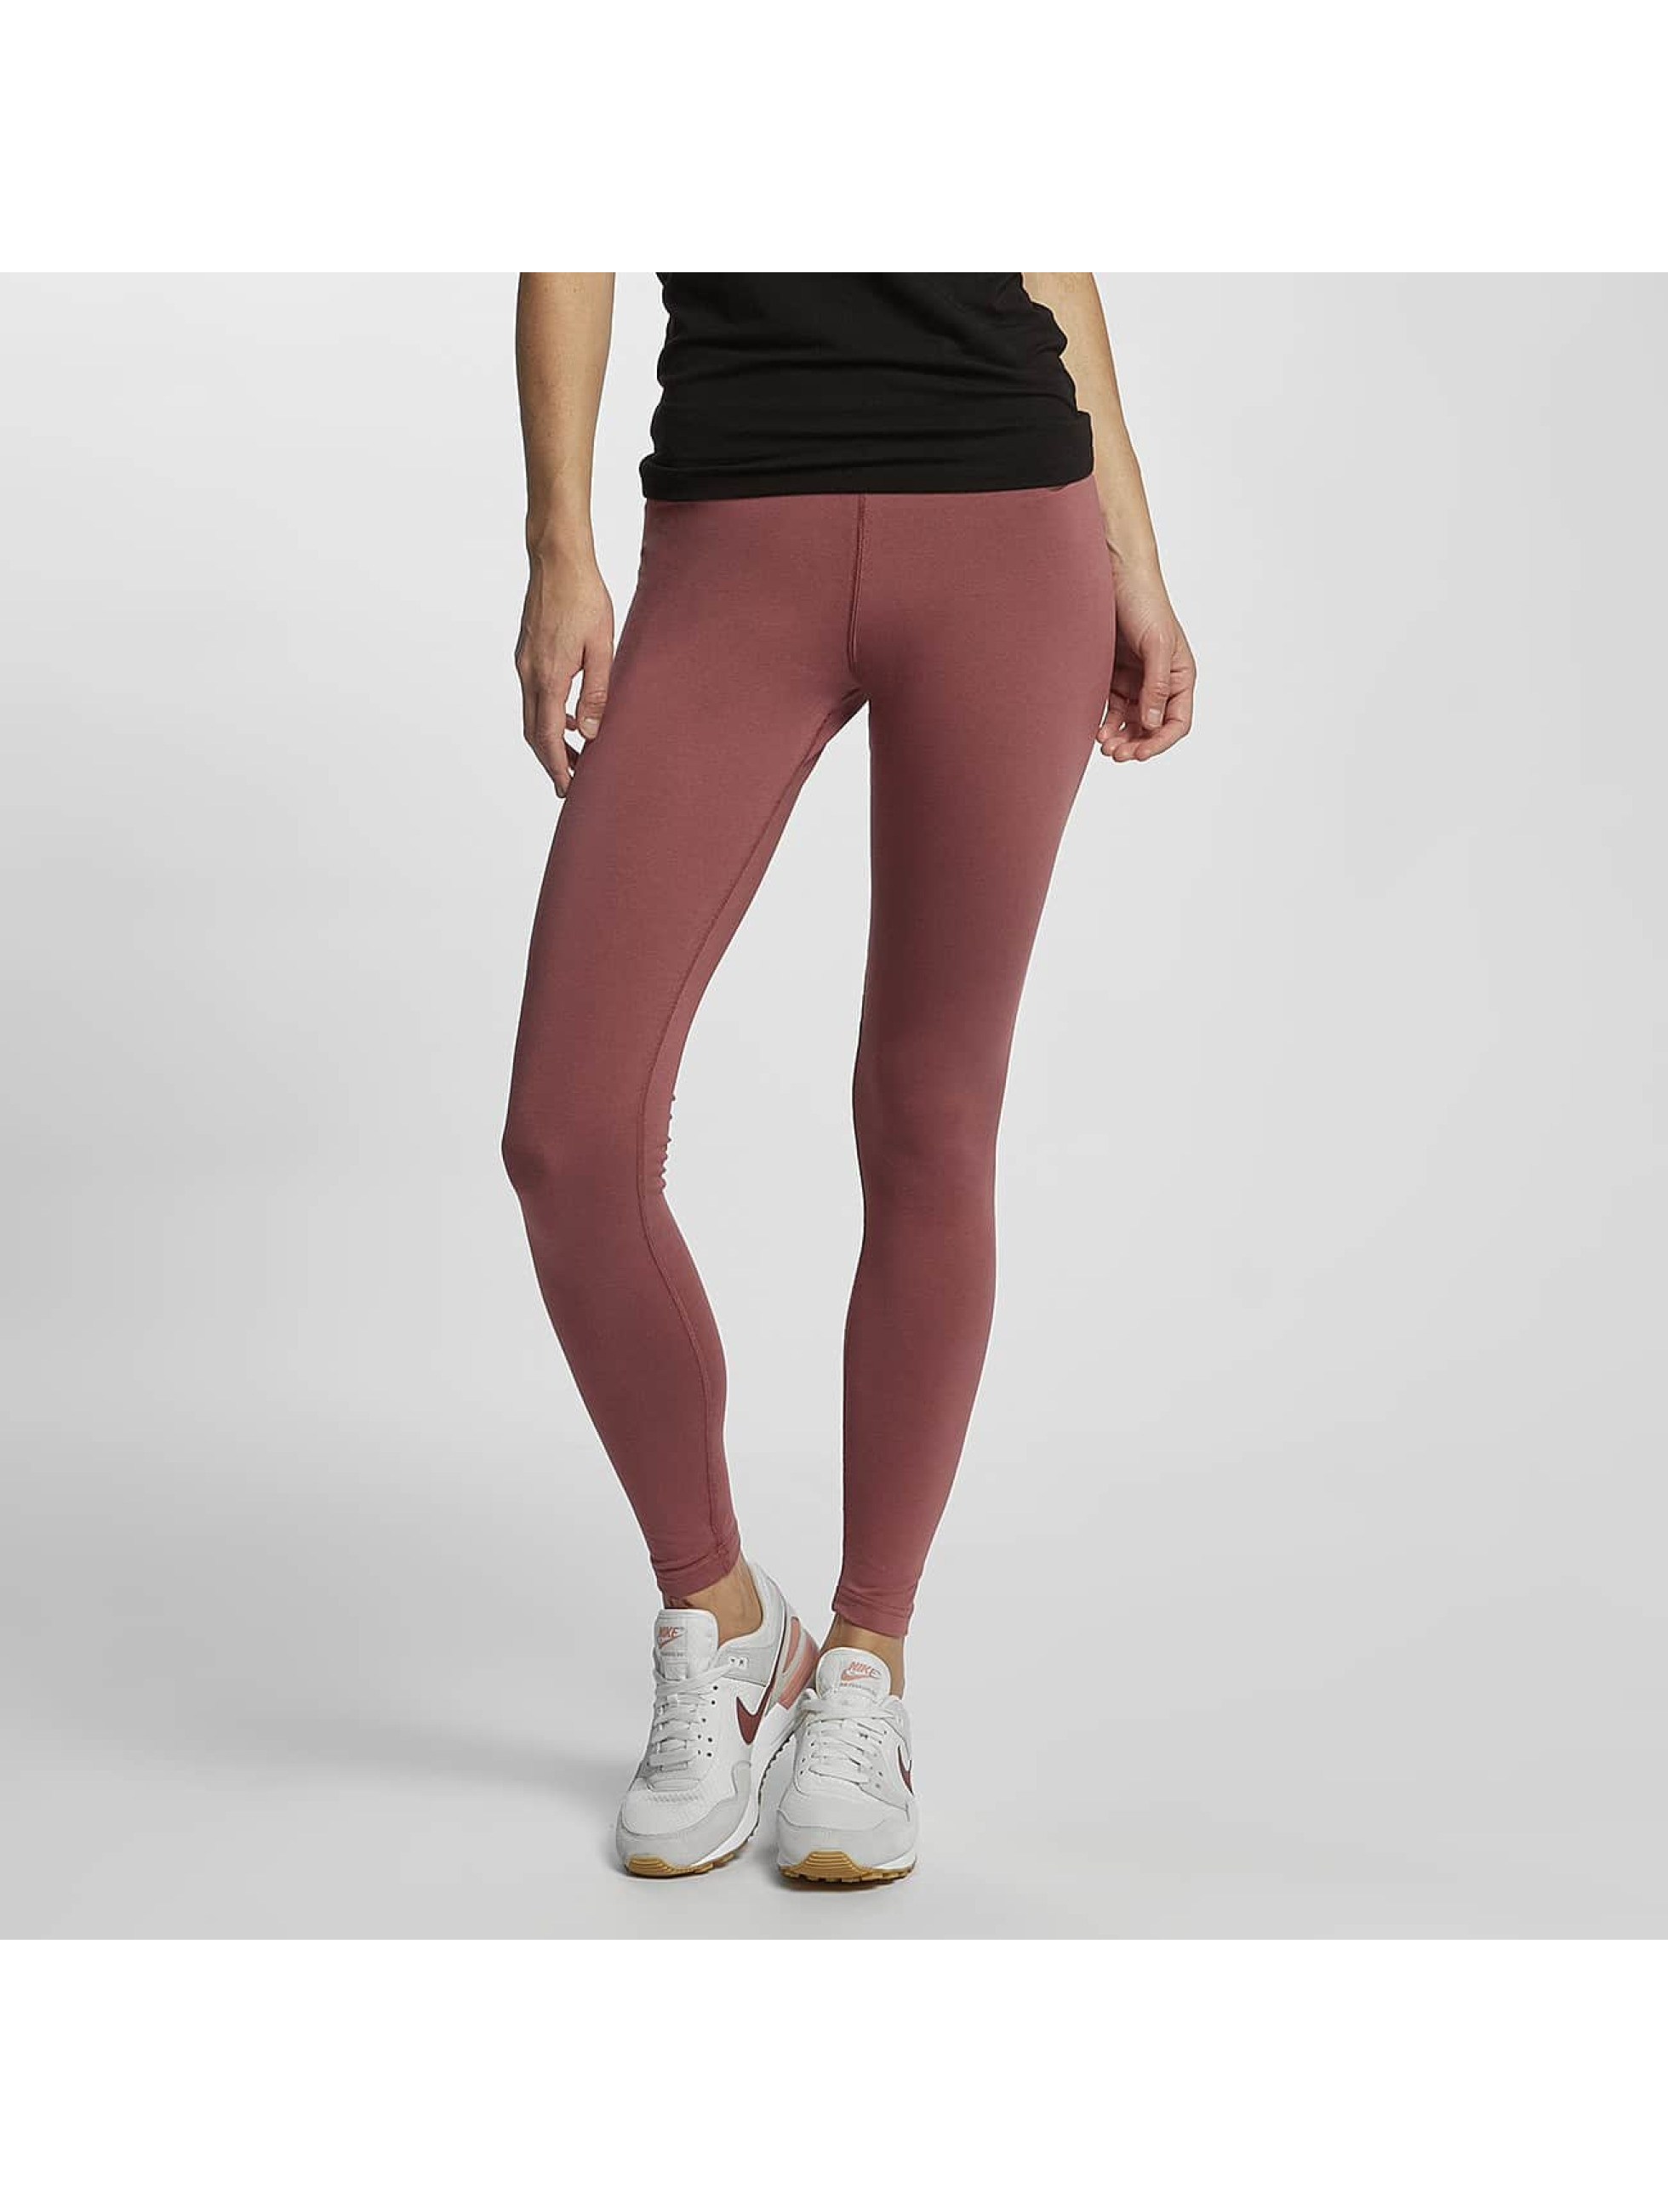 Nike Frauen Legging Just Do It in rot